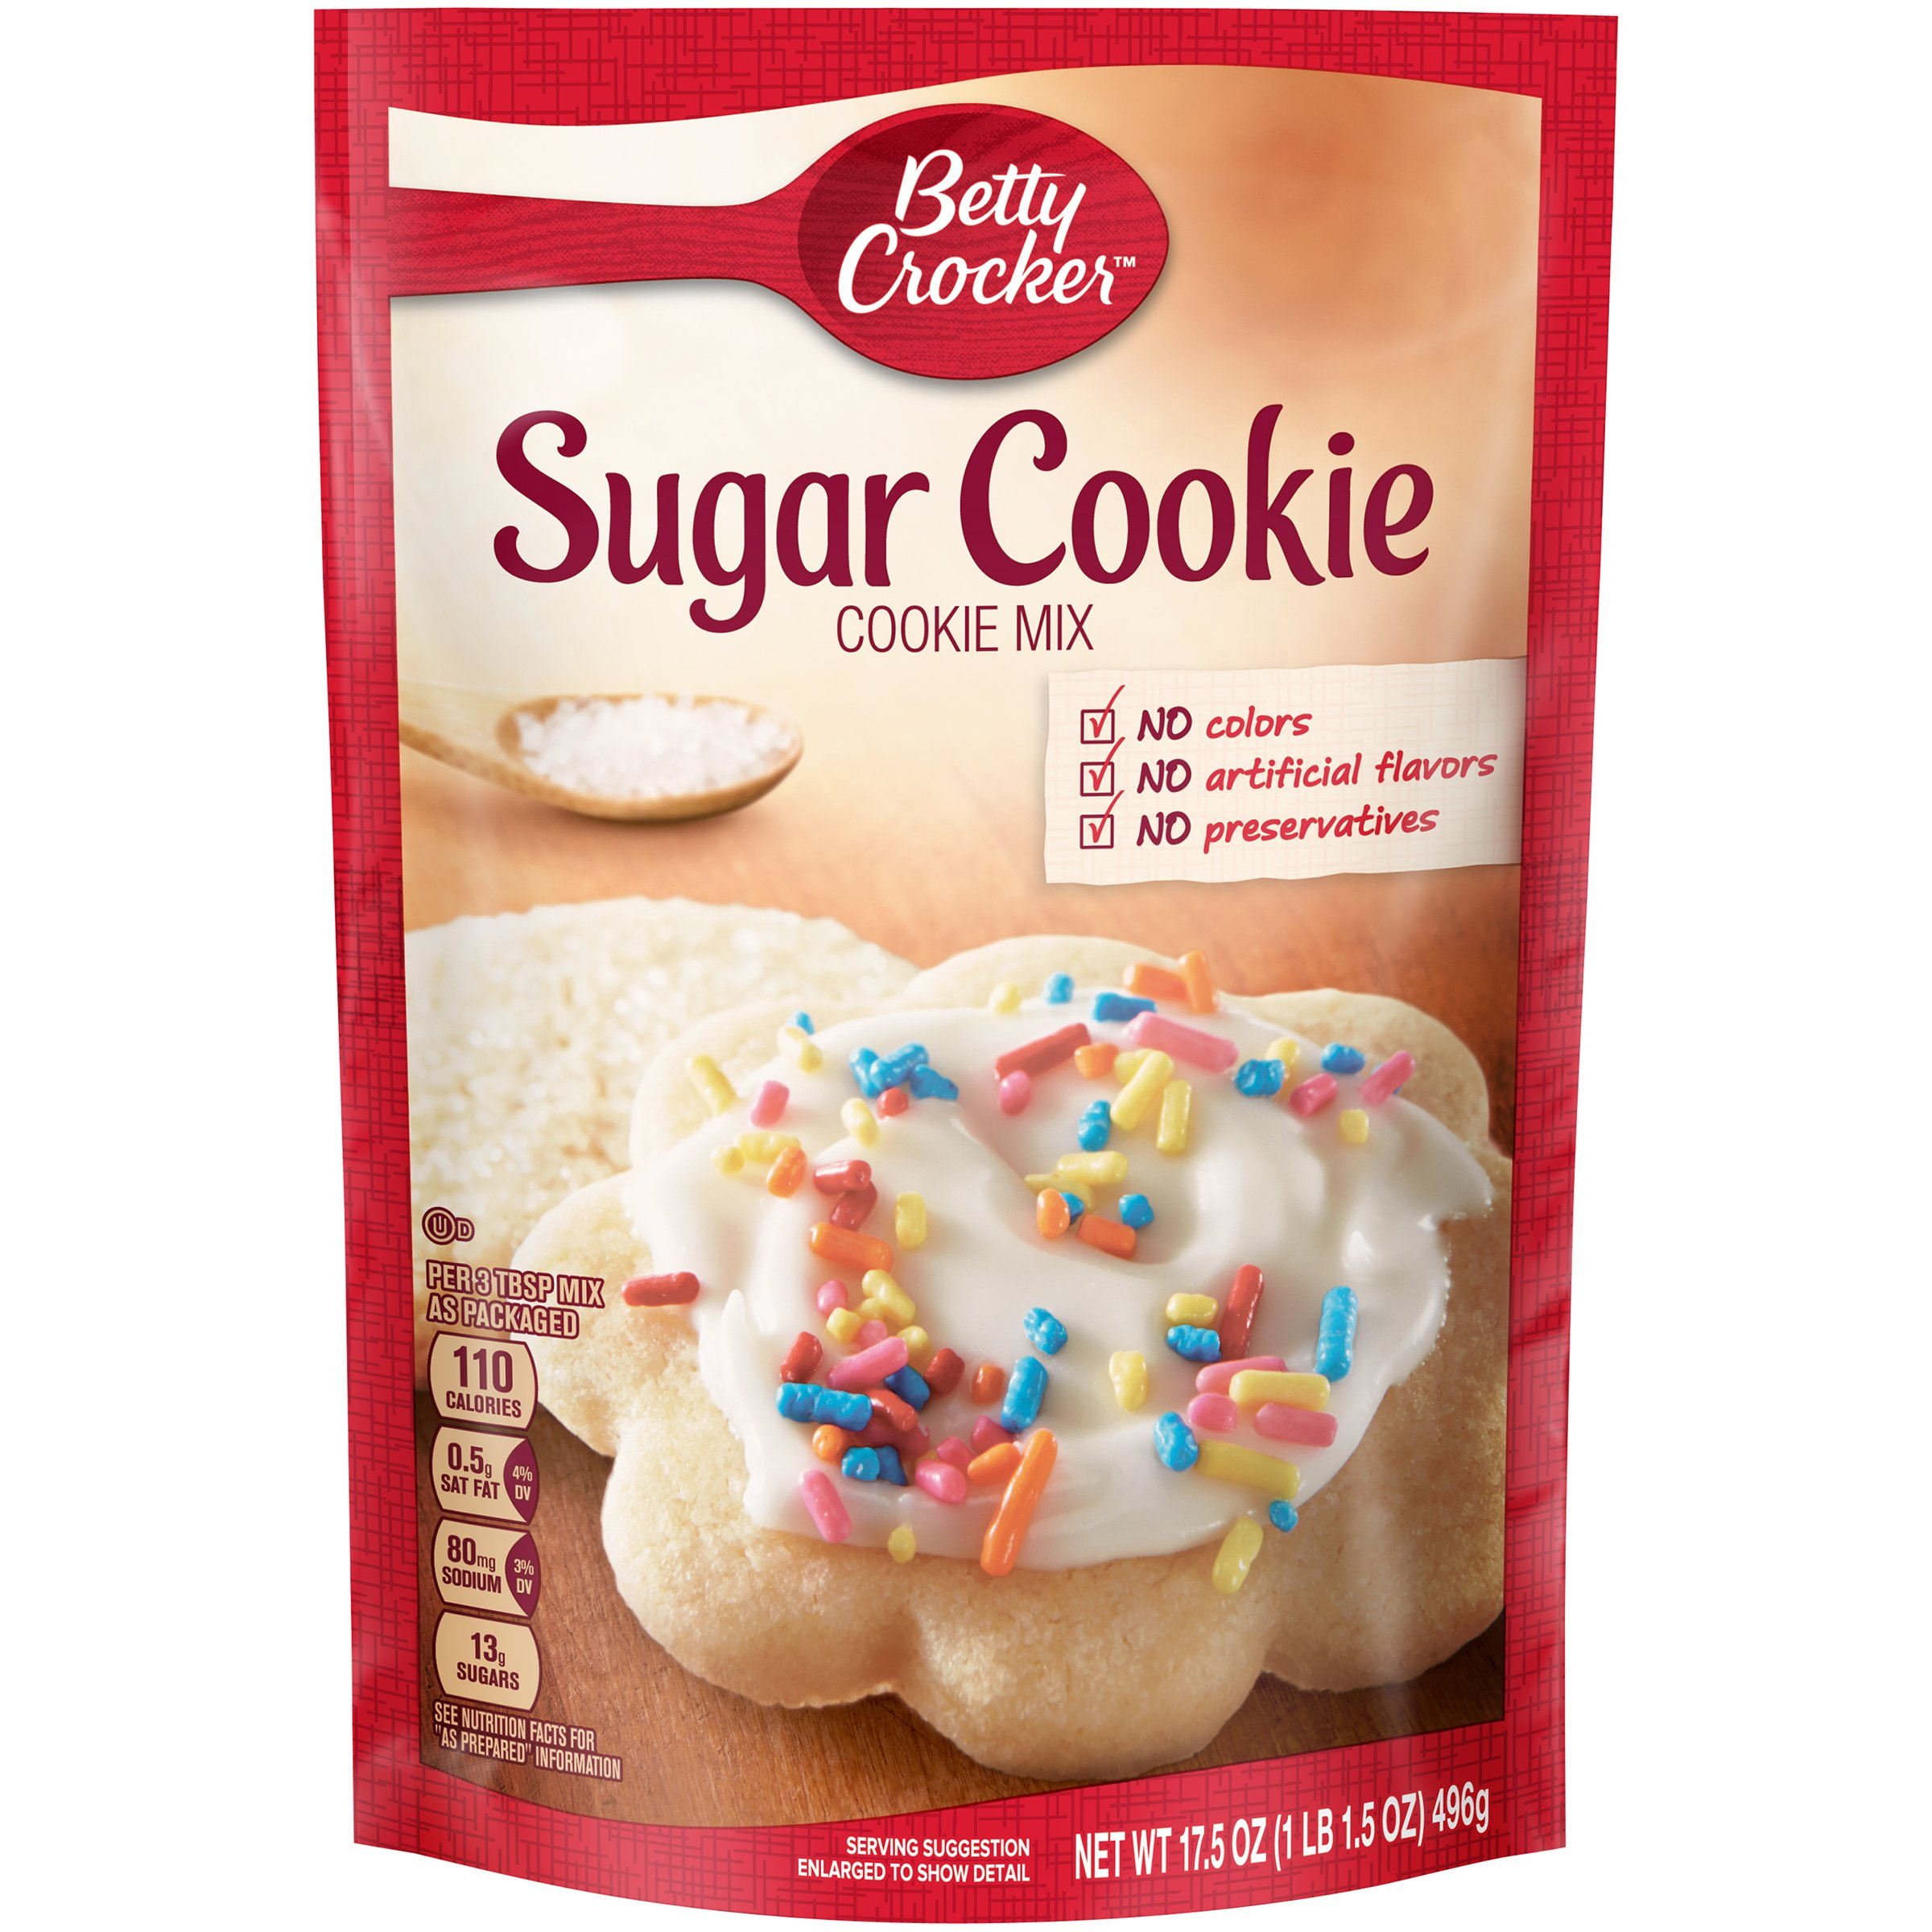 Betty Crocker Baking Mix, Sugar Cookie Mix, 17.5 Oz Pouch